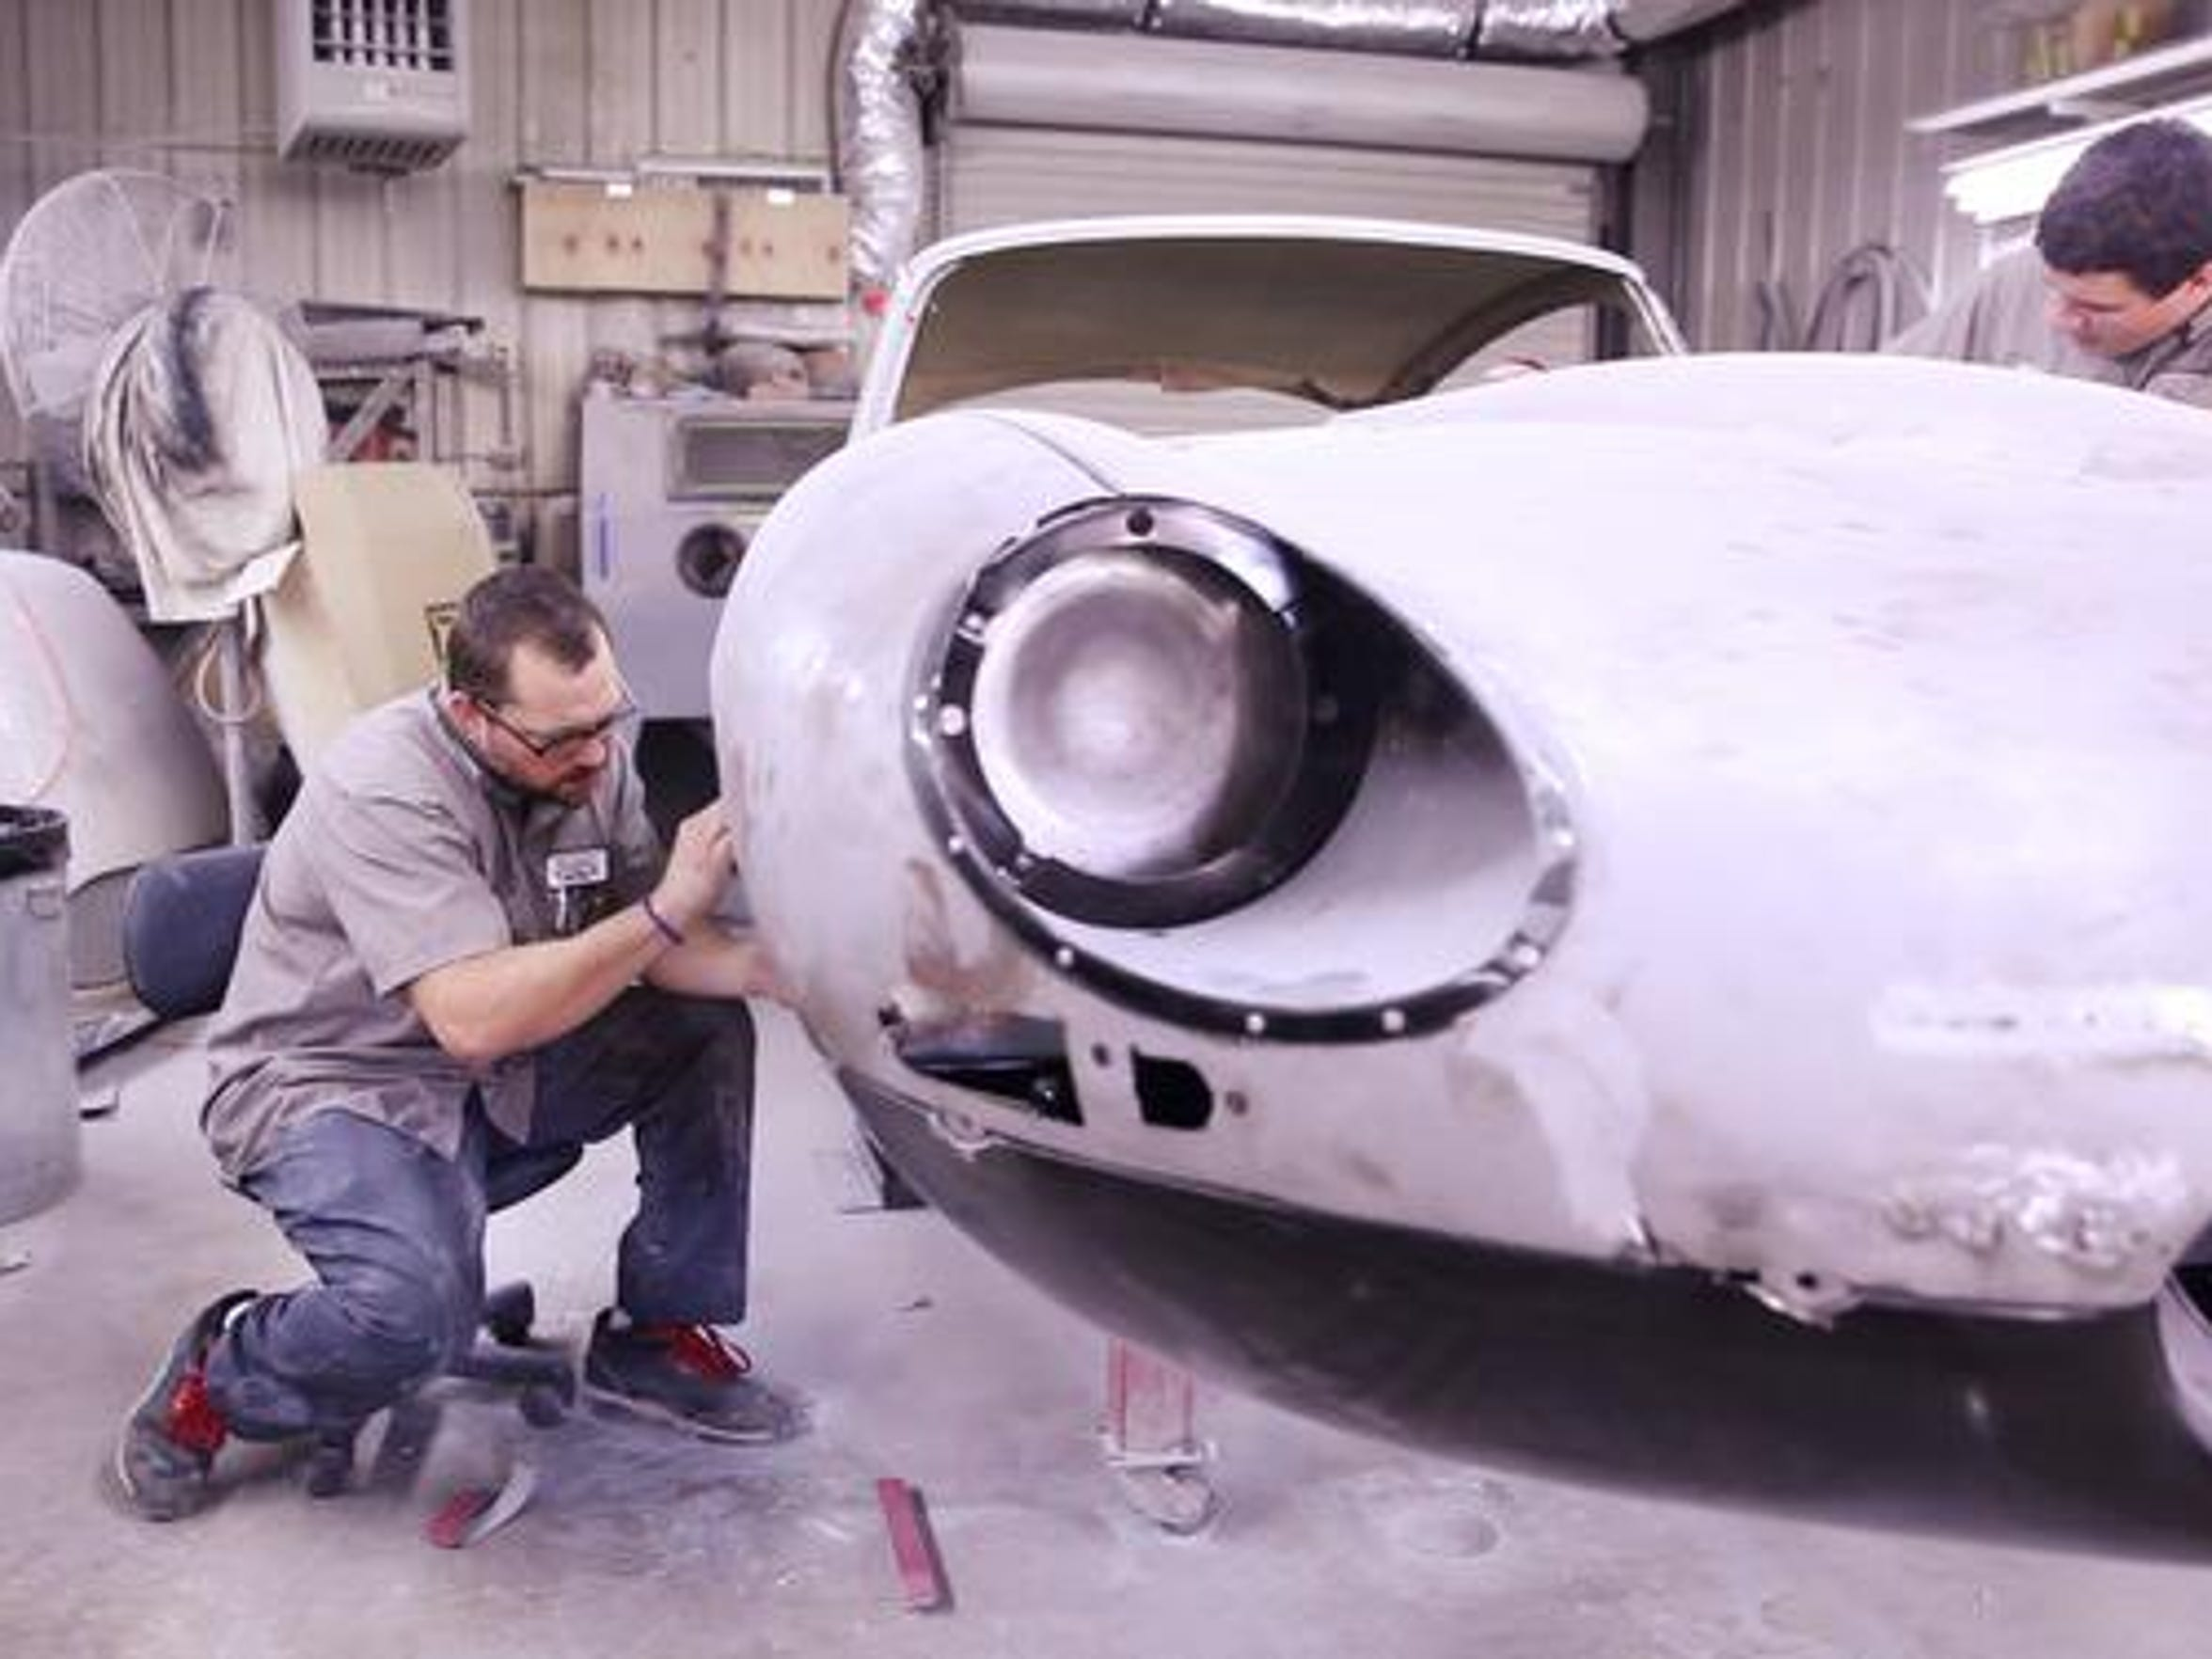 Auto body technicians Johnny Simonetti, left, of Staunton, and Andrew Vest, of Greenville, work on restoring a 1967 Jaguar XKE at Gassman Automotive Products in Waynesboro on Monday, Sept. 14, 2015.